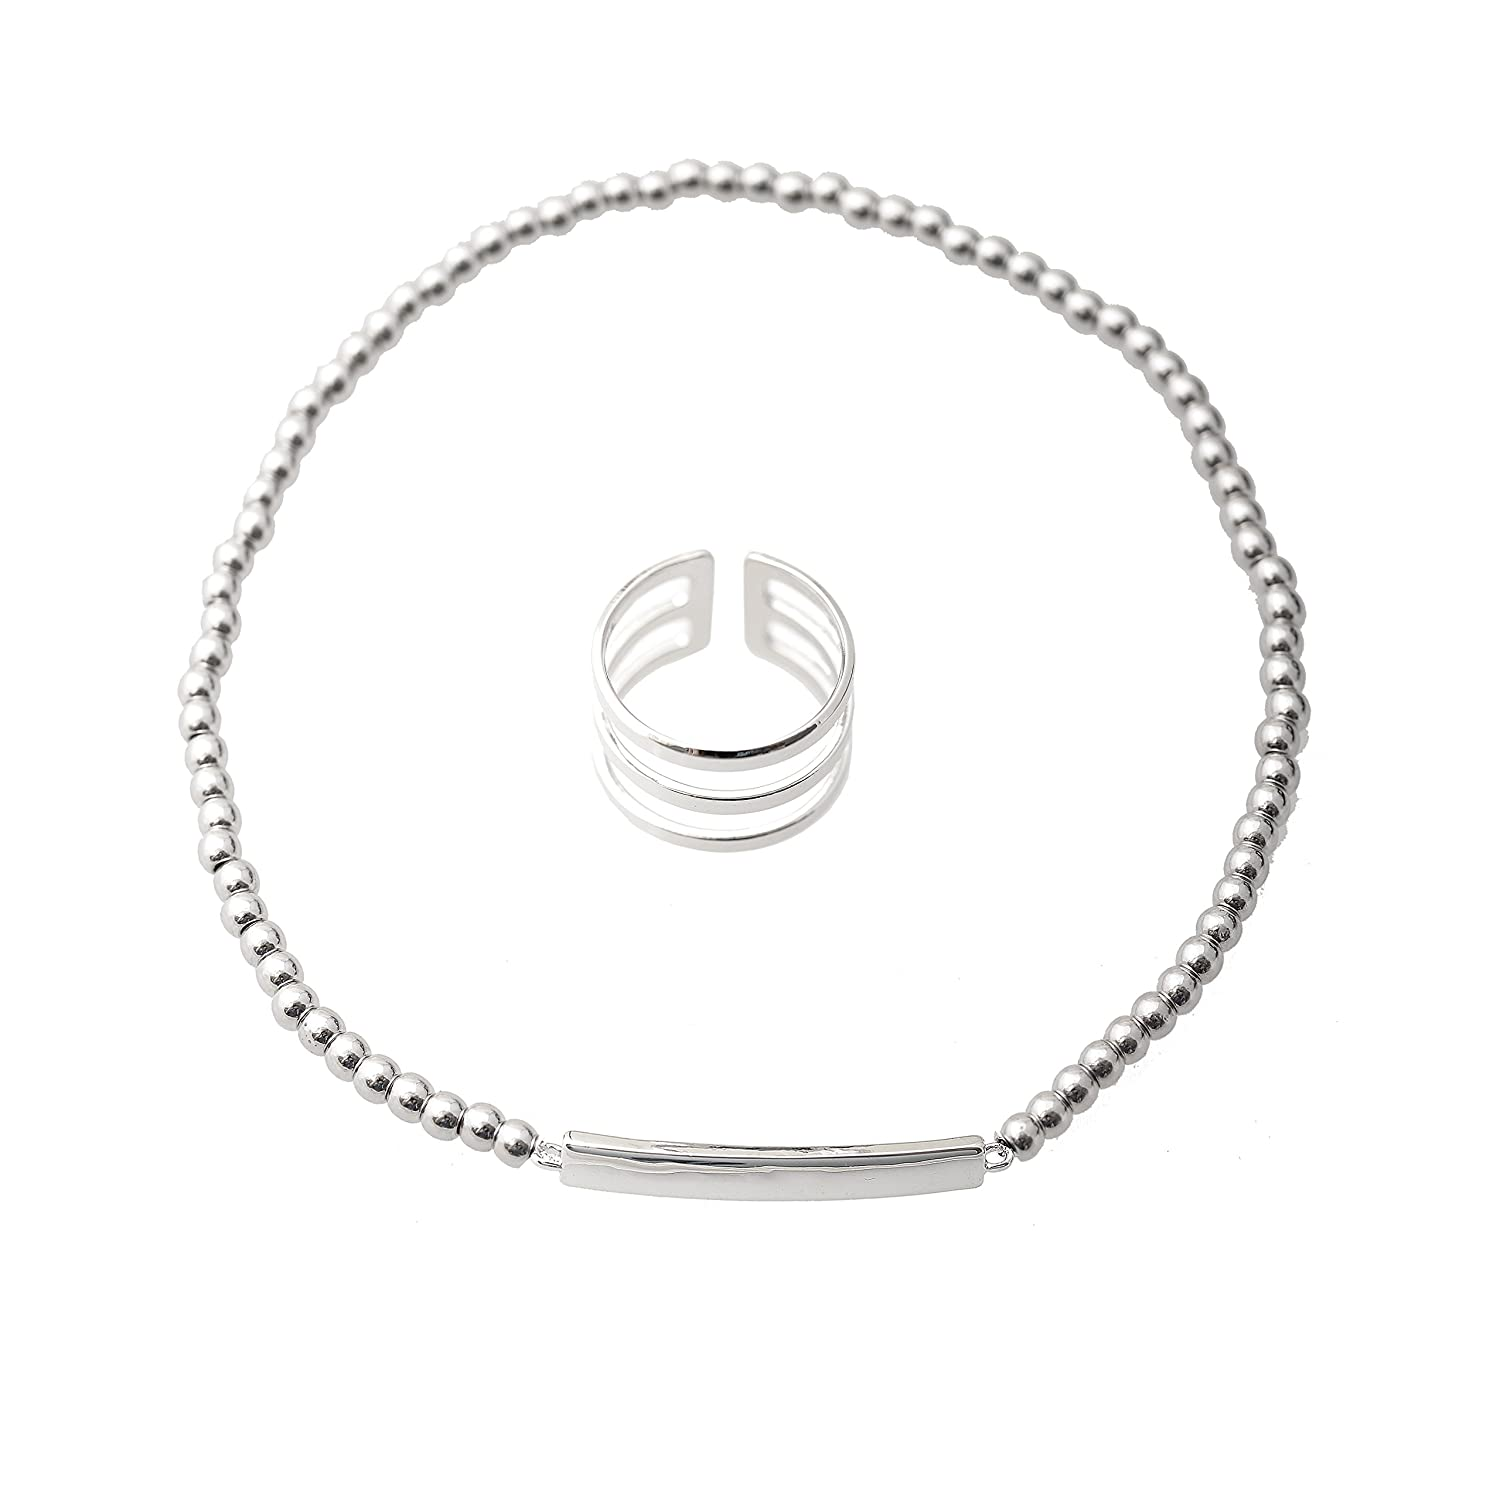 Spinningdaisy Three Line Toe Ring and Bar Stretch Anklet Set